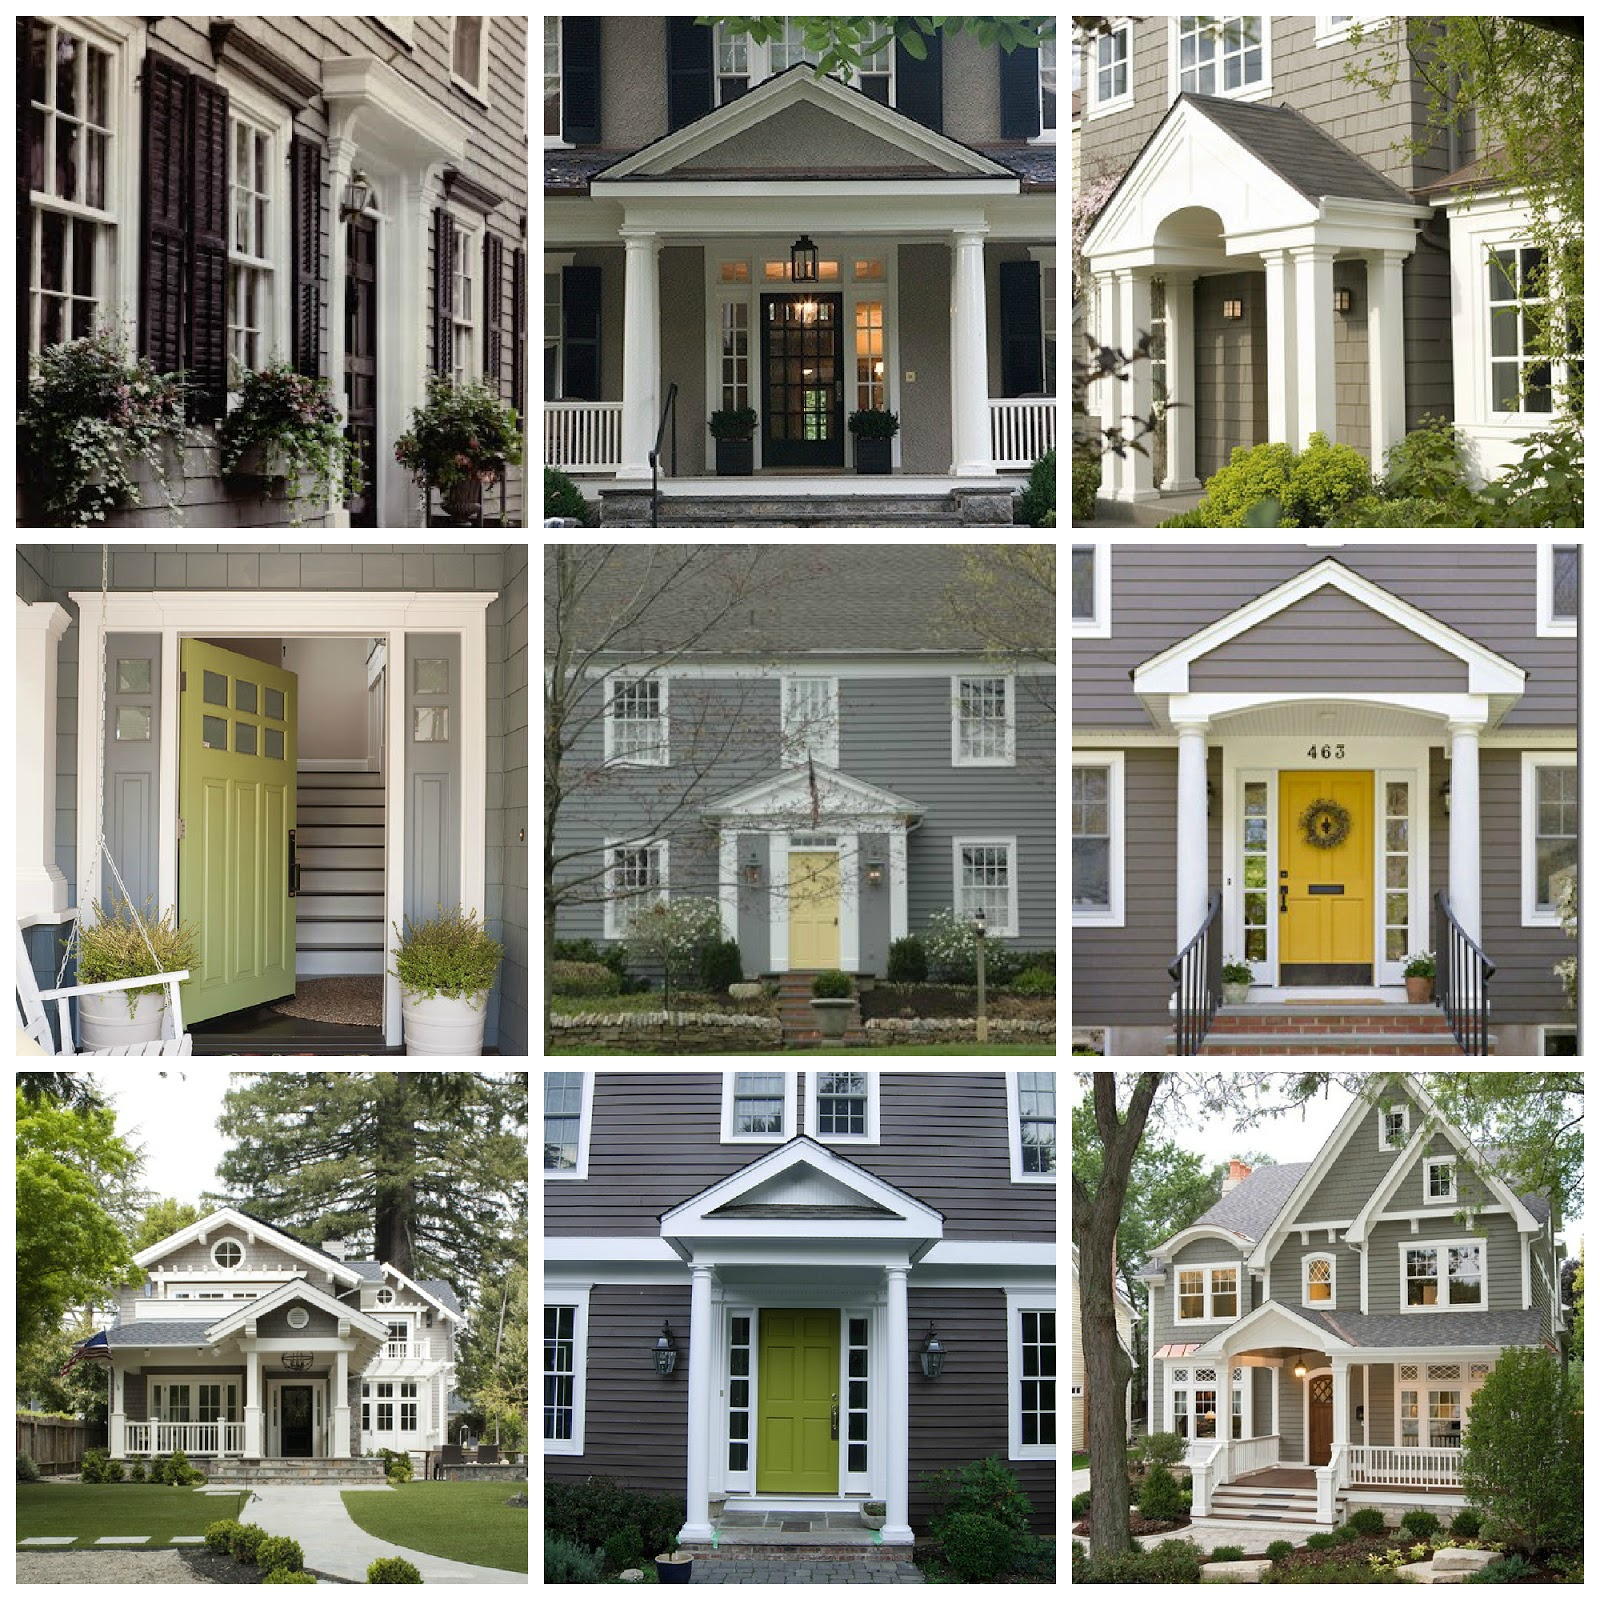 1000 Images About House Colors On Pinterest Dark Grey Houses White Trim And Exterior Paint